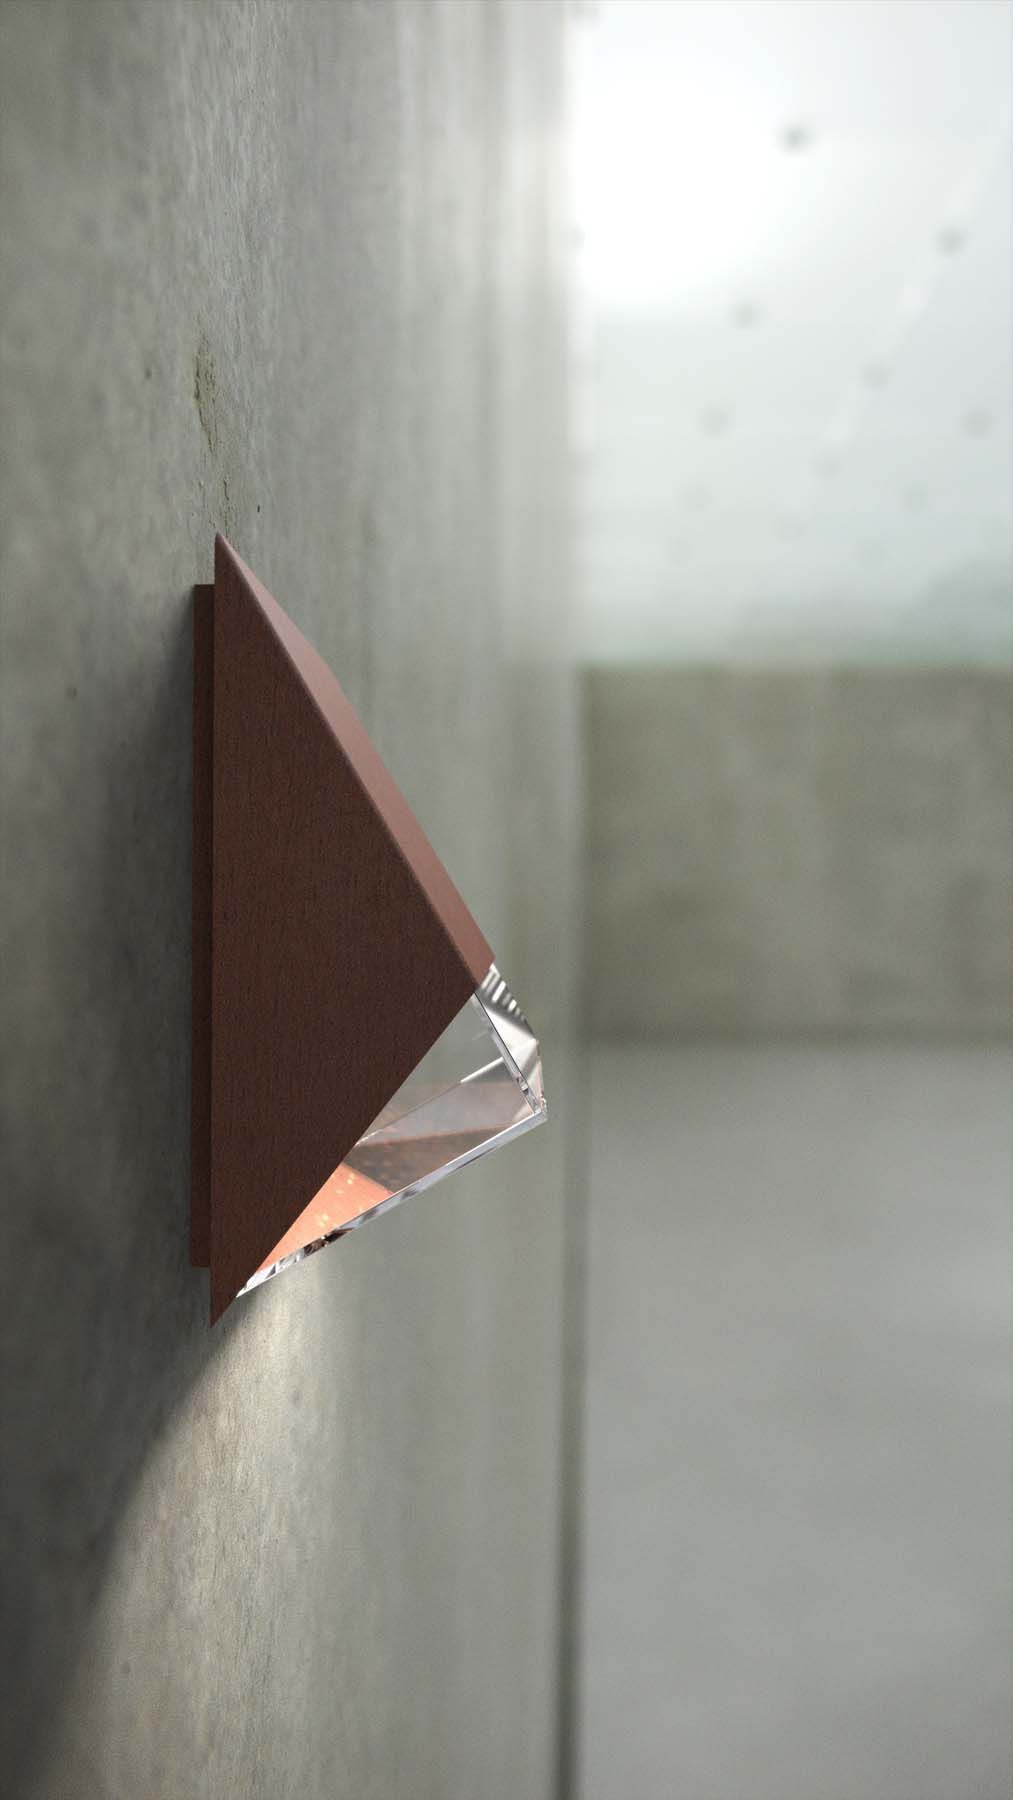 Edge Wall Lamp From Nordlux Designed By Bonnelycke Mdd Nordic And Scandinavian Style Light D Wall Lights Exterior Wall Light Garden Exterior Lighting